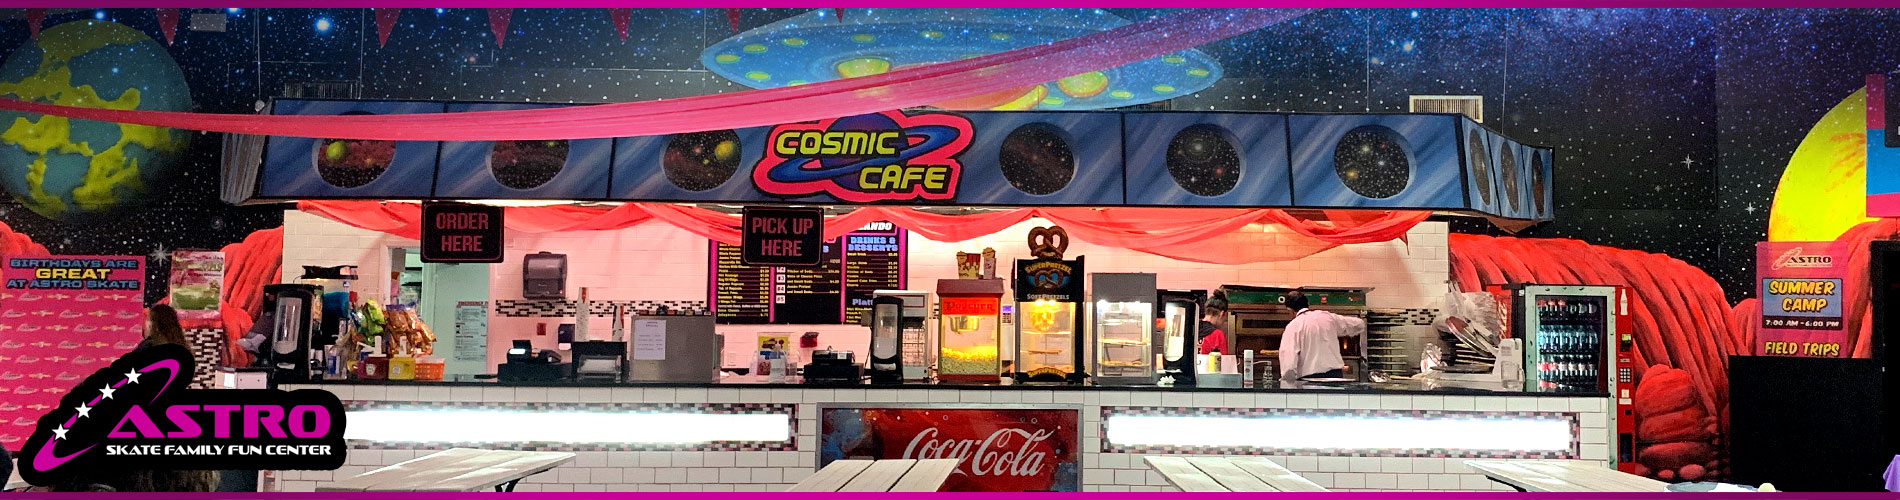 Astro Cosmic Cafe – Astro Skating Center